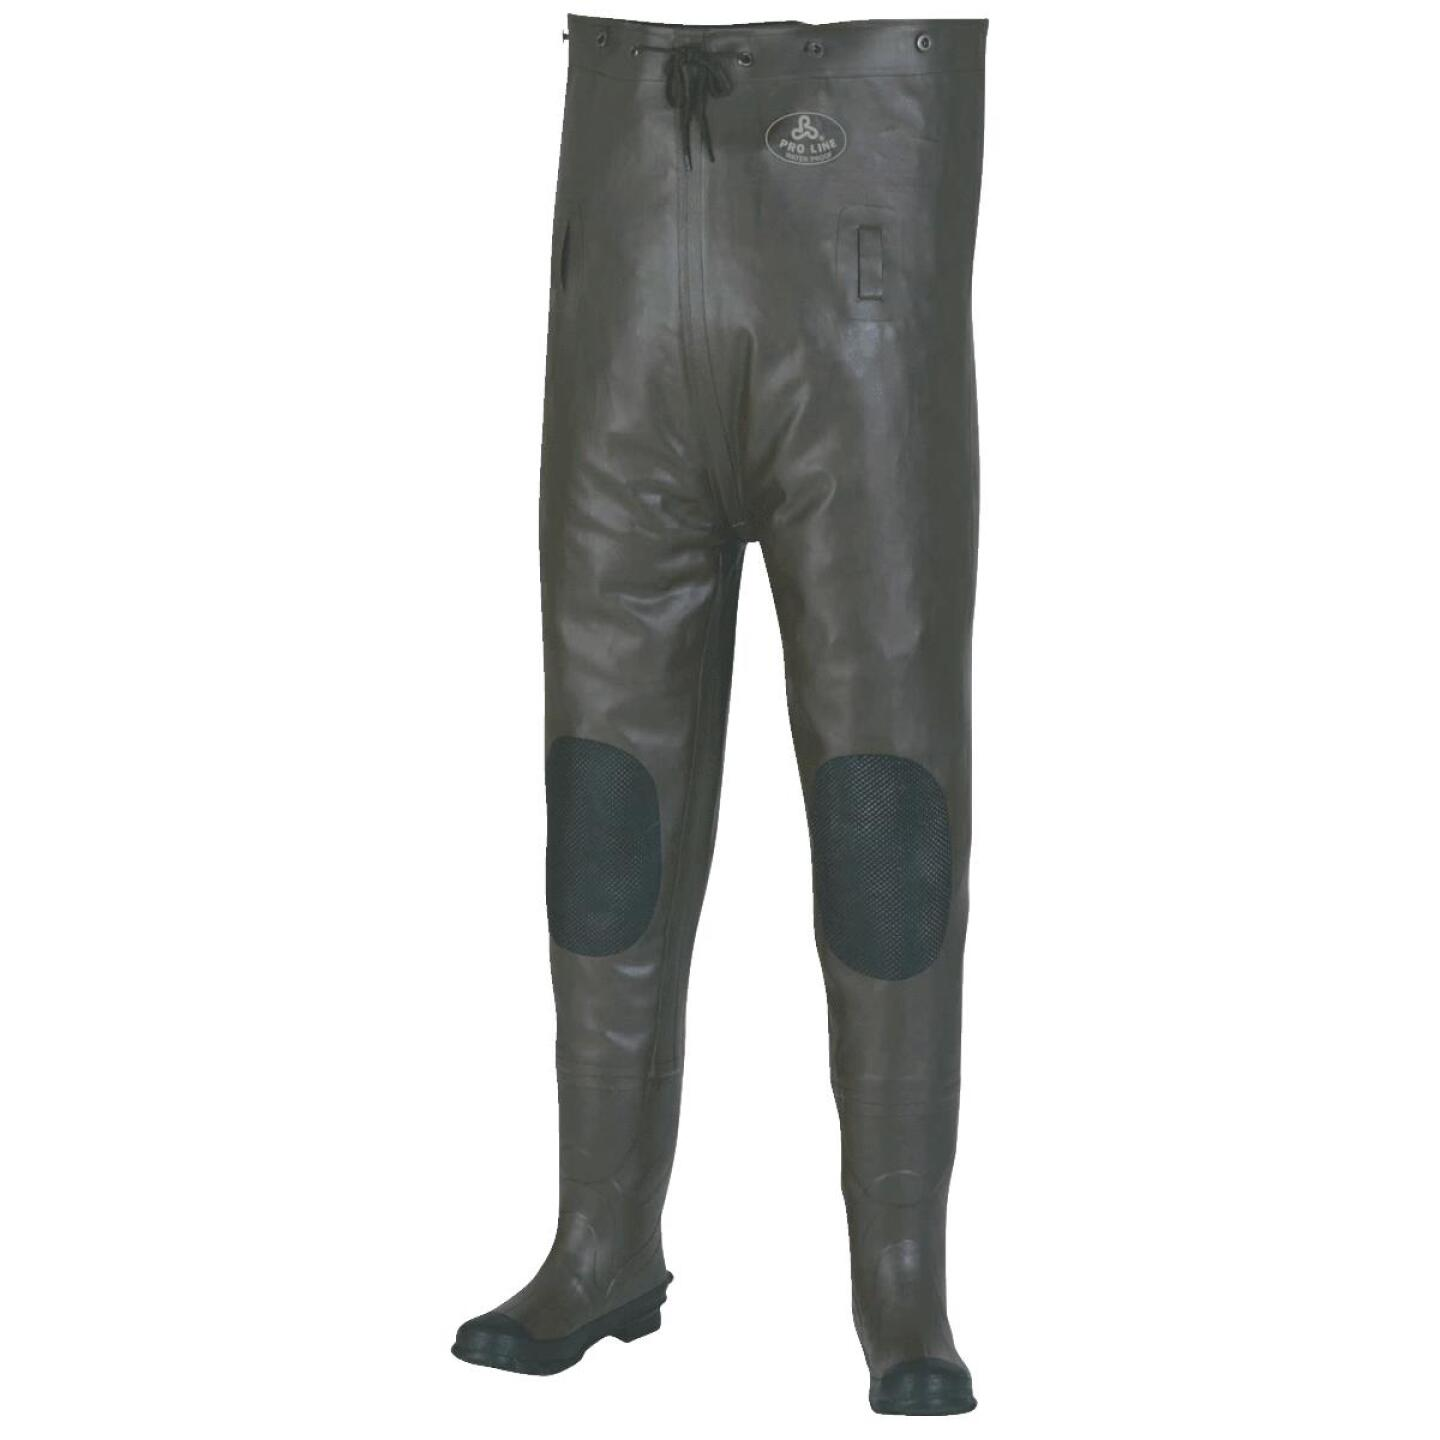 Pro Line Shoe Size 13 Gray Rubber Chest Waders Image 1